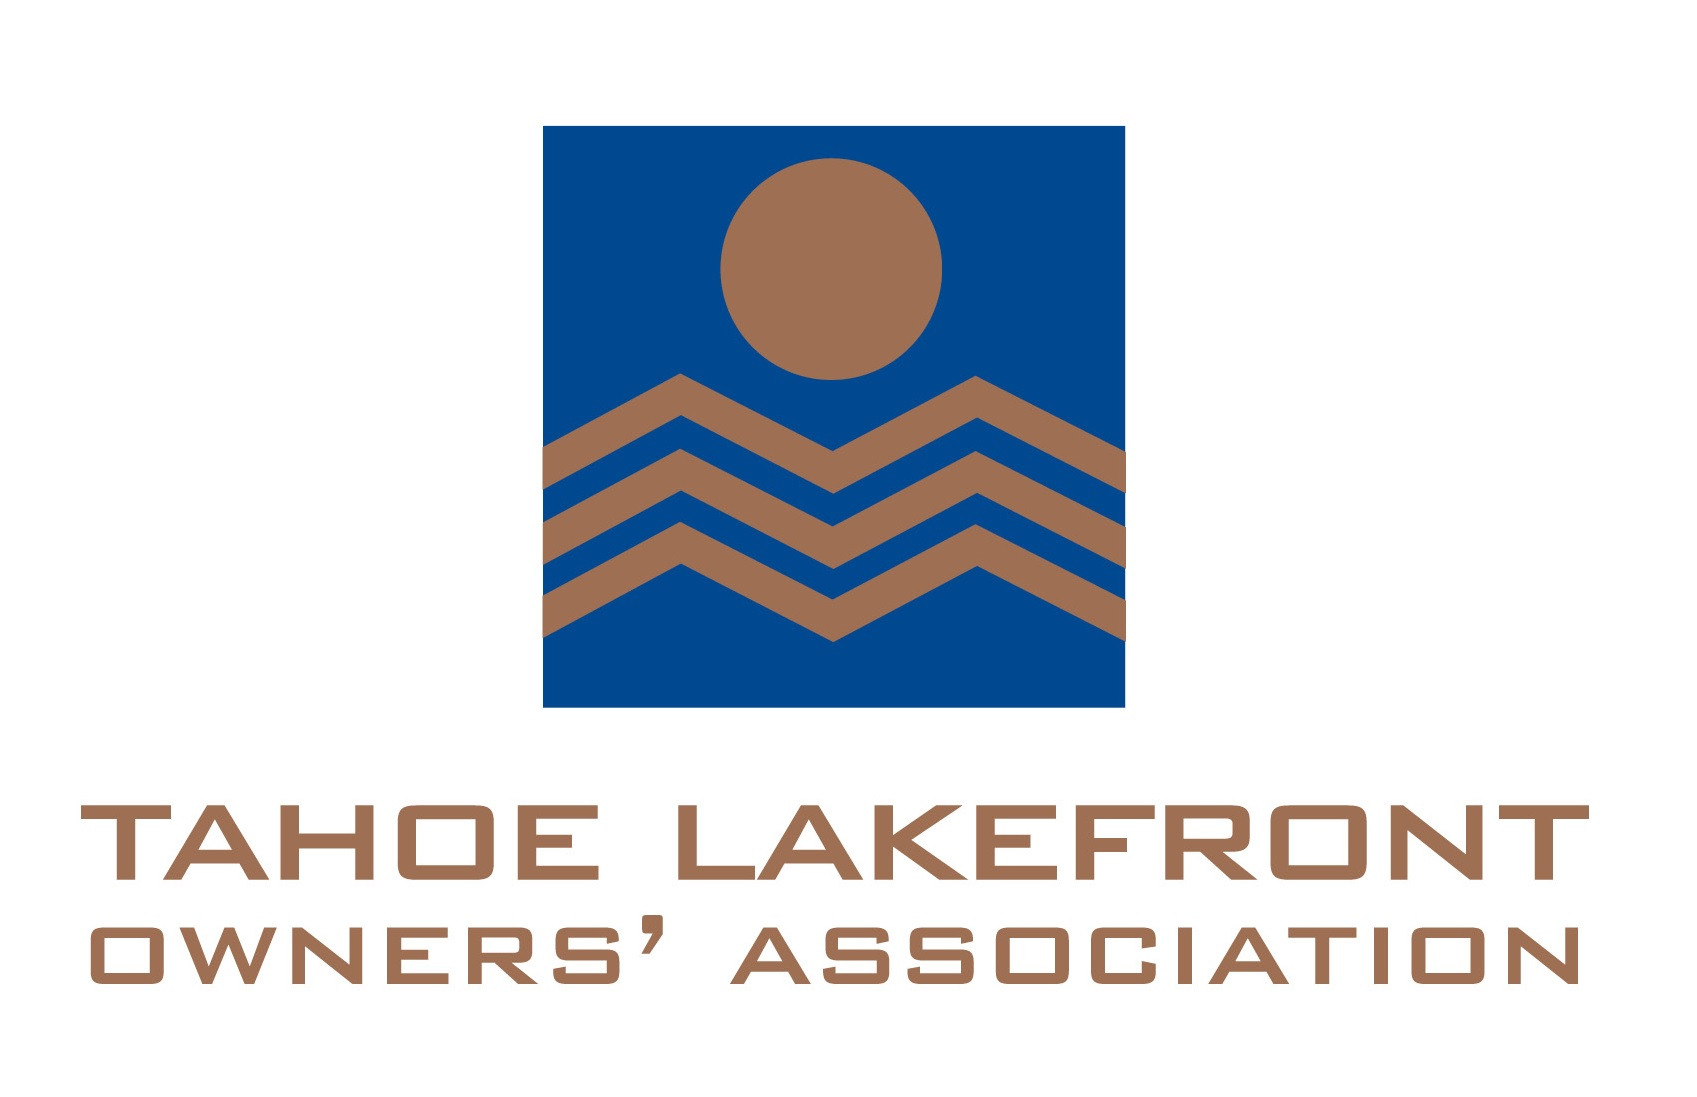 tahoe lakefront owners association